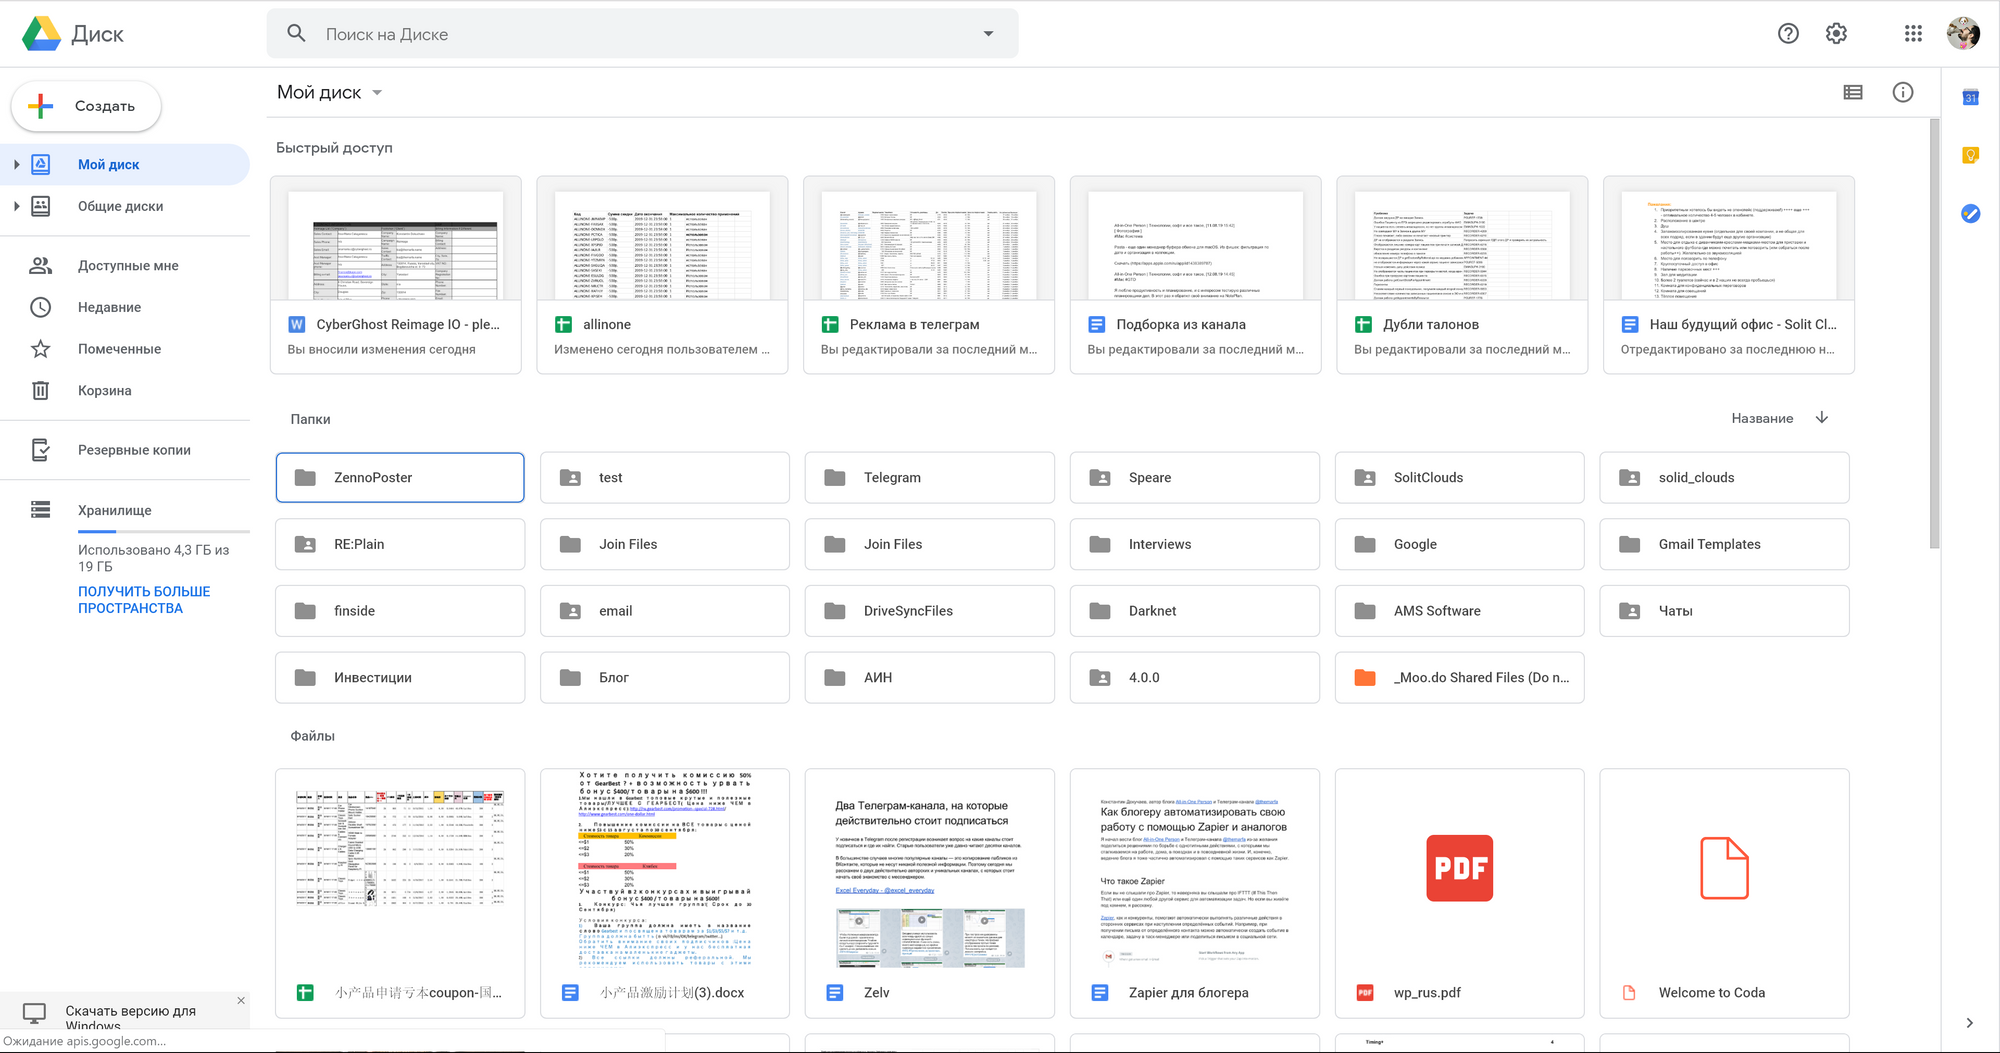 Web version of Google Drive